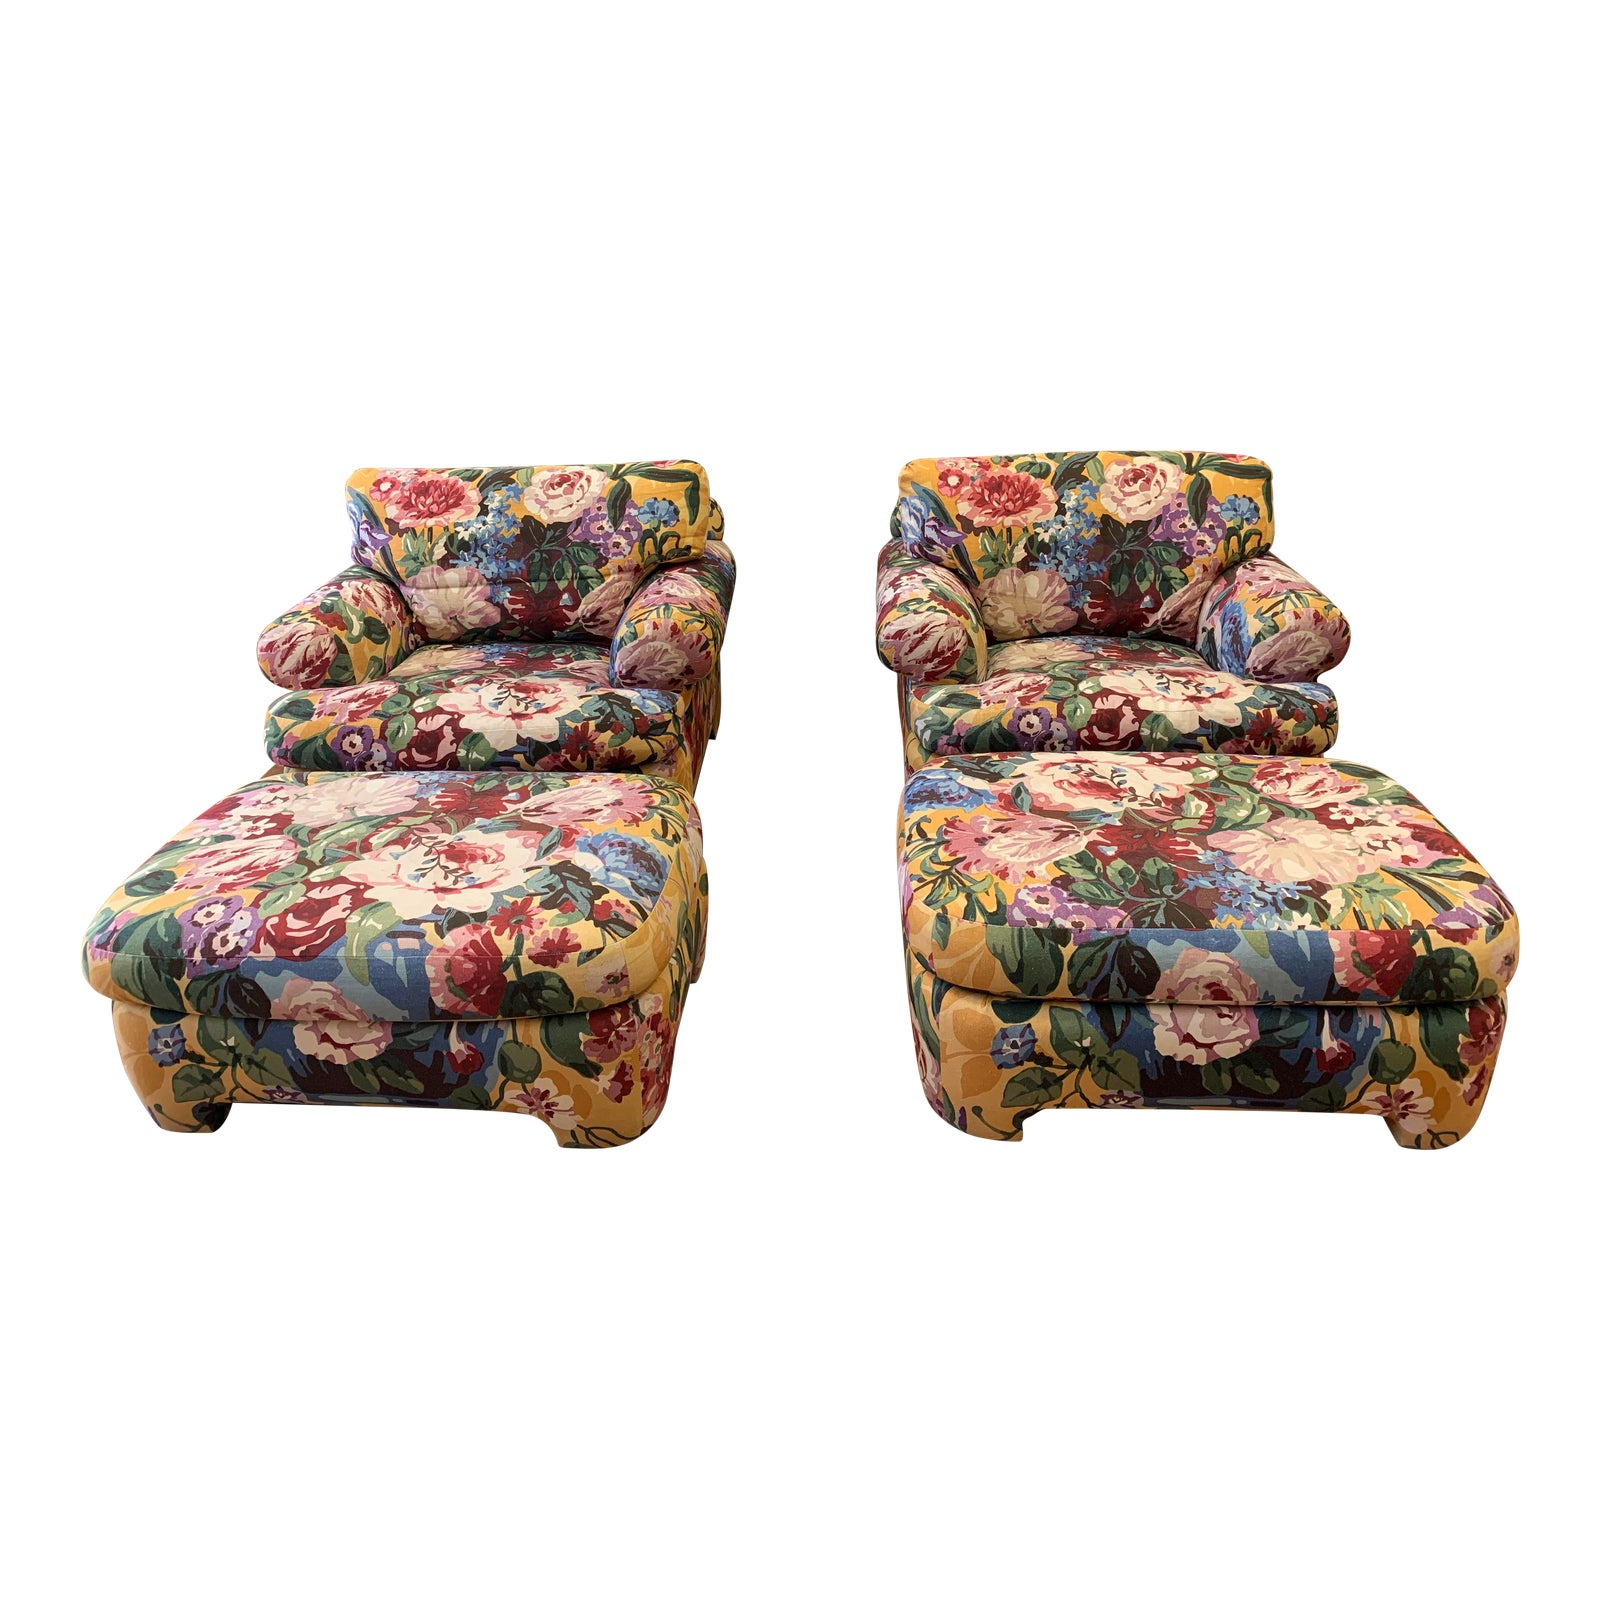 Enjoyable Kroll Furniture Floral Lounge Chairs Ottomans A Pair Squirreltailoven Fun Painted Chair Ideas Images Squirreltailovenorg